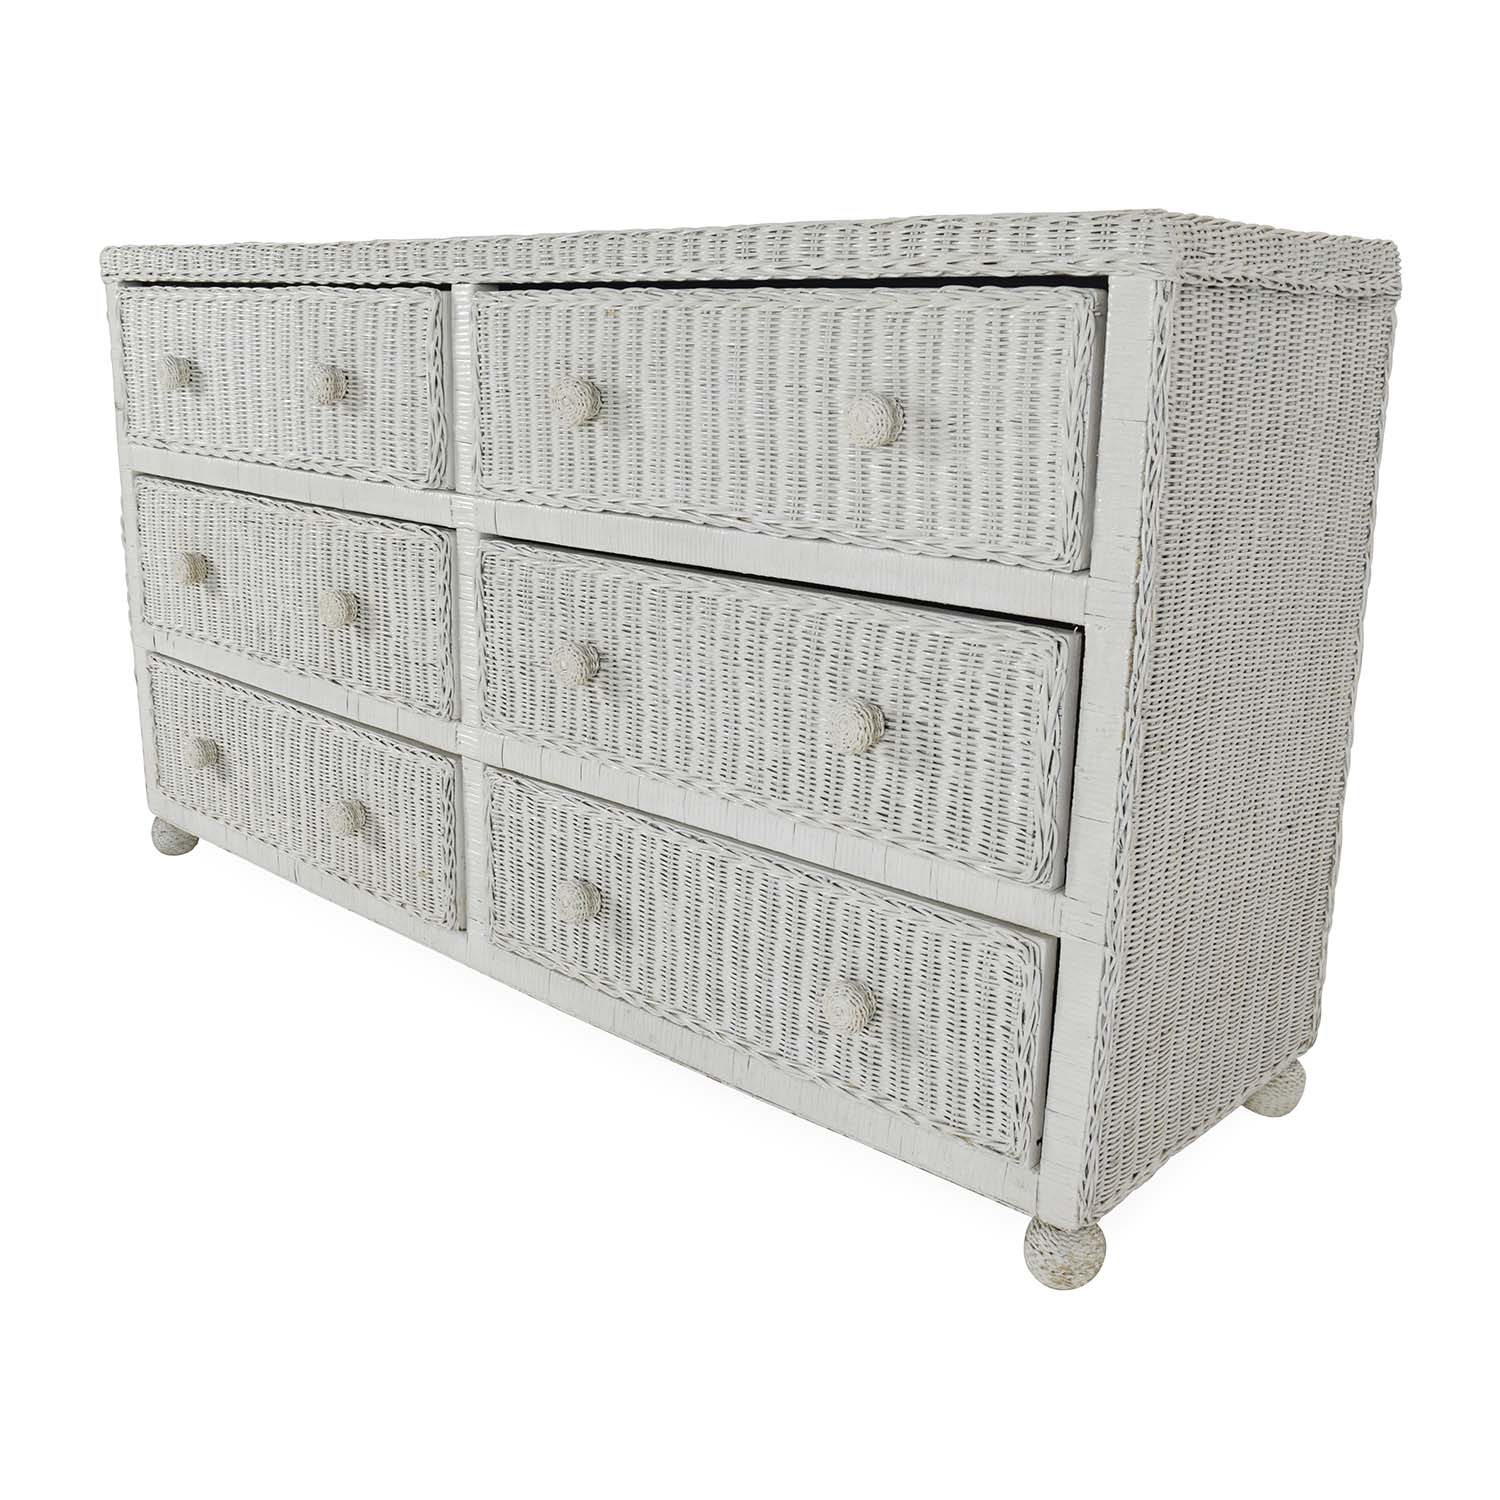 furniture ideas home decor wicker basics bedroom gorgeous with white on interior sale for dresser